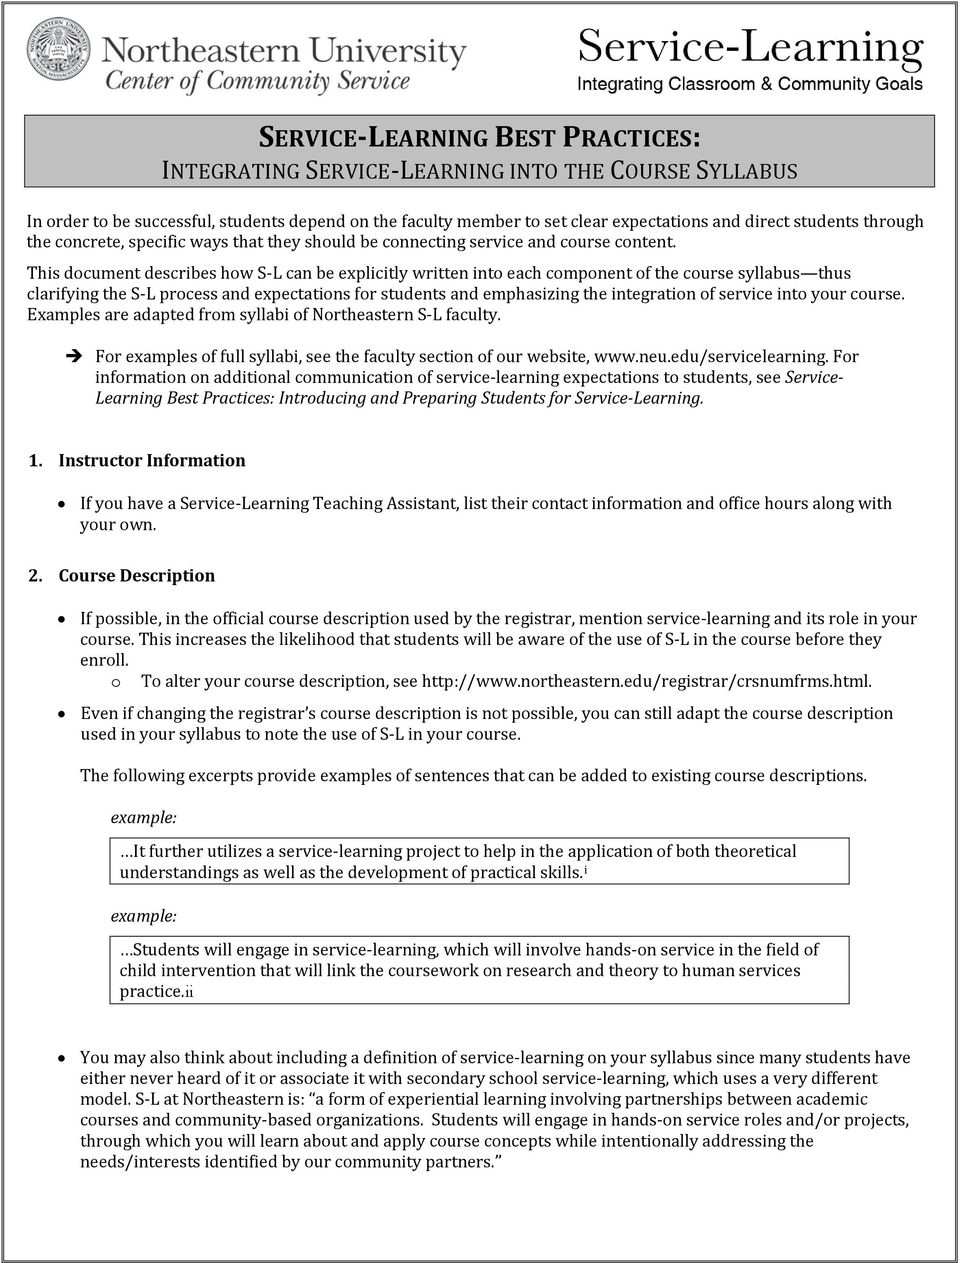 This document describes how S-L can be explicitly written into each component of the course syllabus thus clarifying the S-L process and expectations for students and emphasizing the integration of